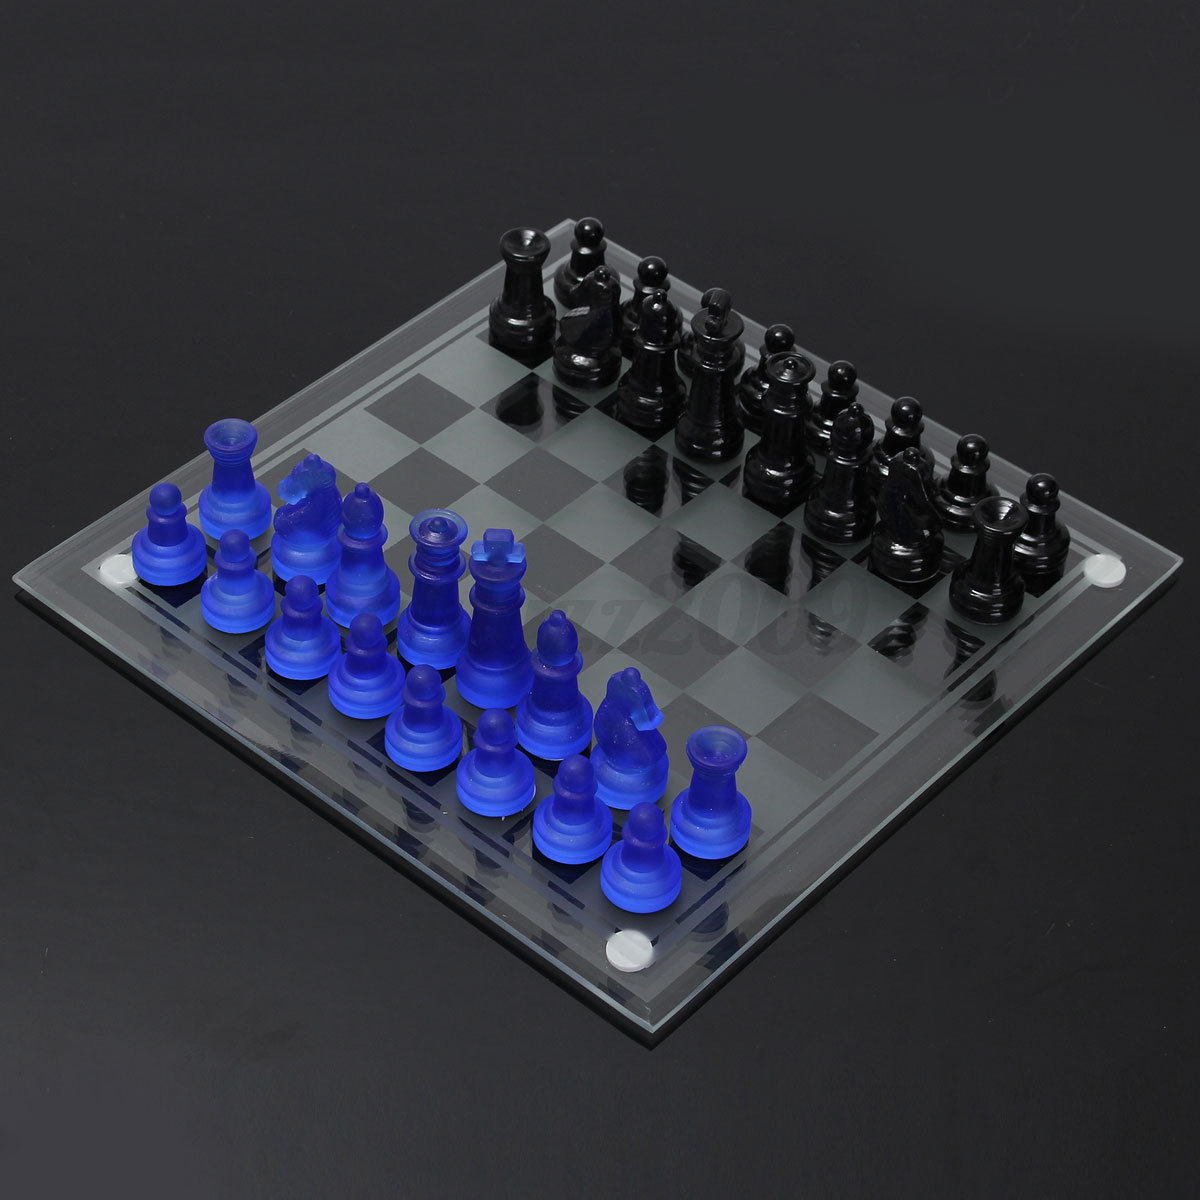 Megnetic Elegant Frosted Glass Chess With Board 2 In 1